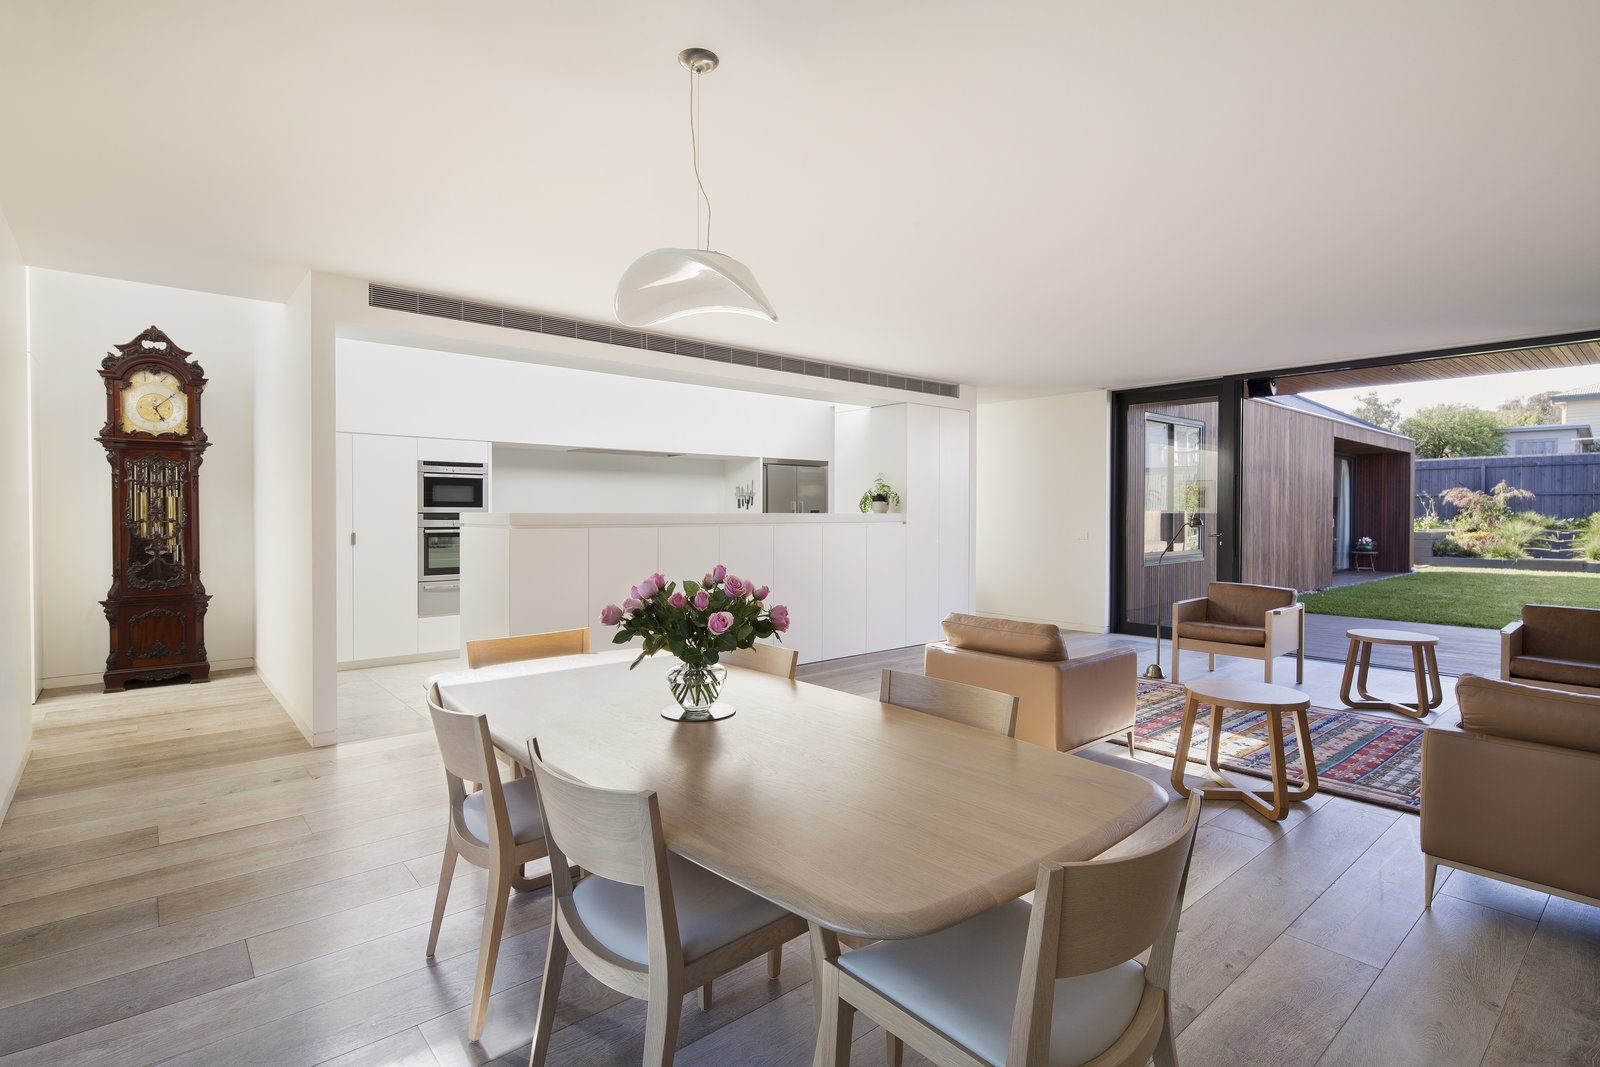 Dining Room, Table, Pendant Lighting, Chair, and Light Hardwood Floor  Photo 2 of 6 in A Timber-Clad Home in Australia Is a Striking Place to Grow Old In